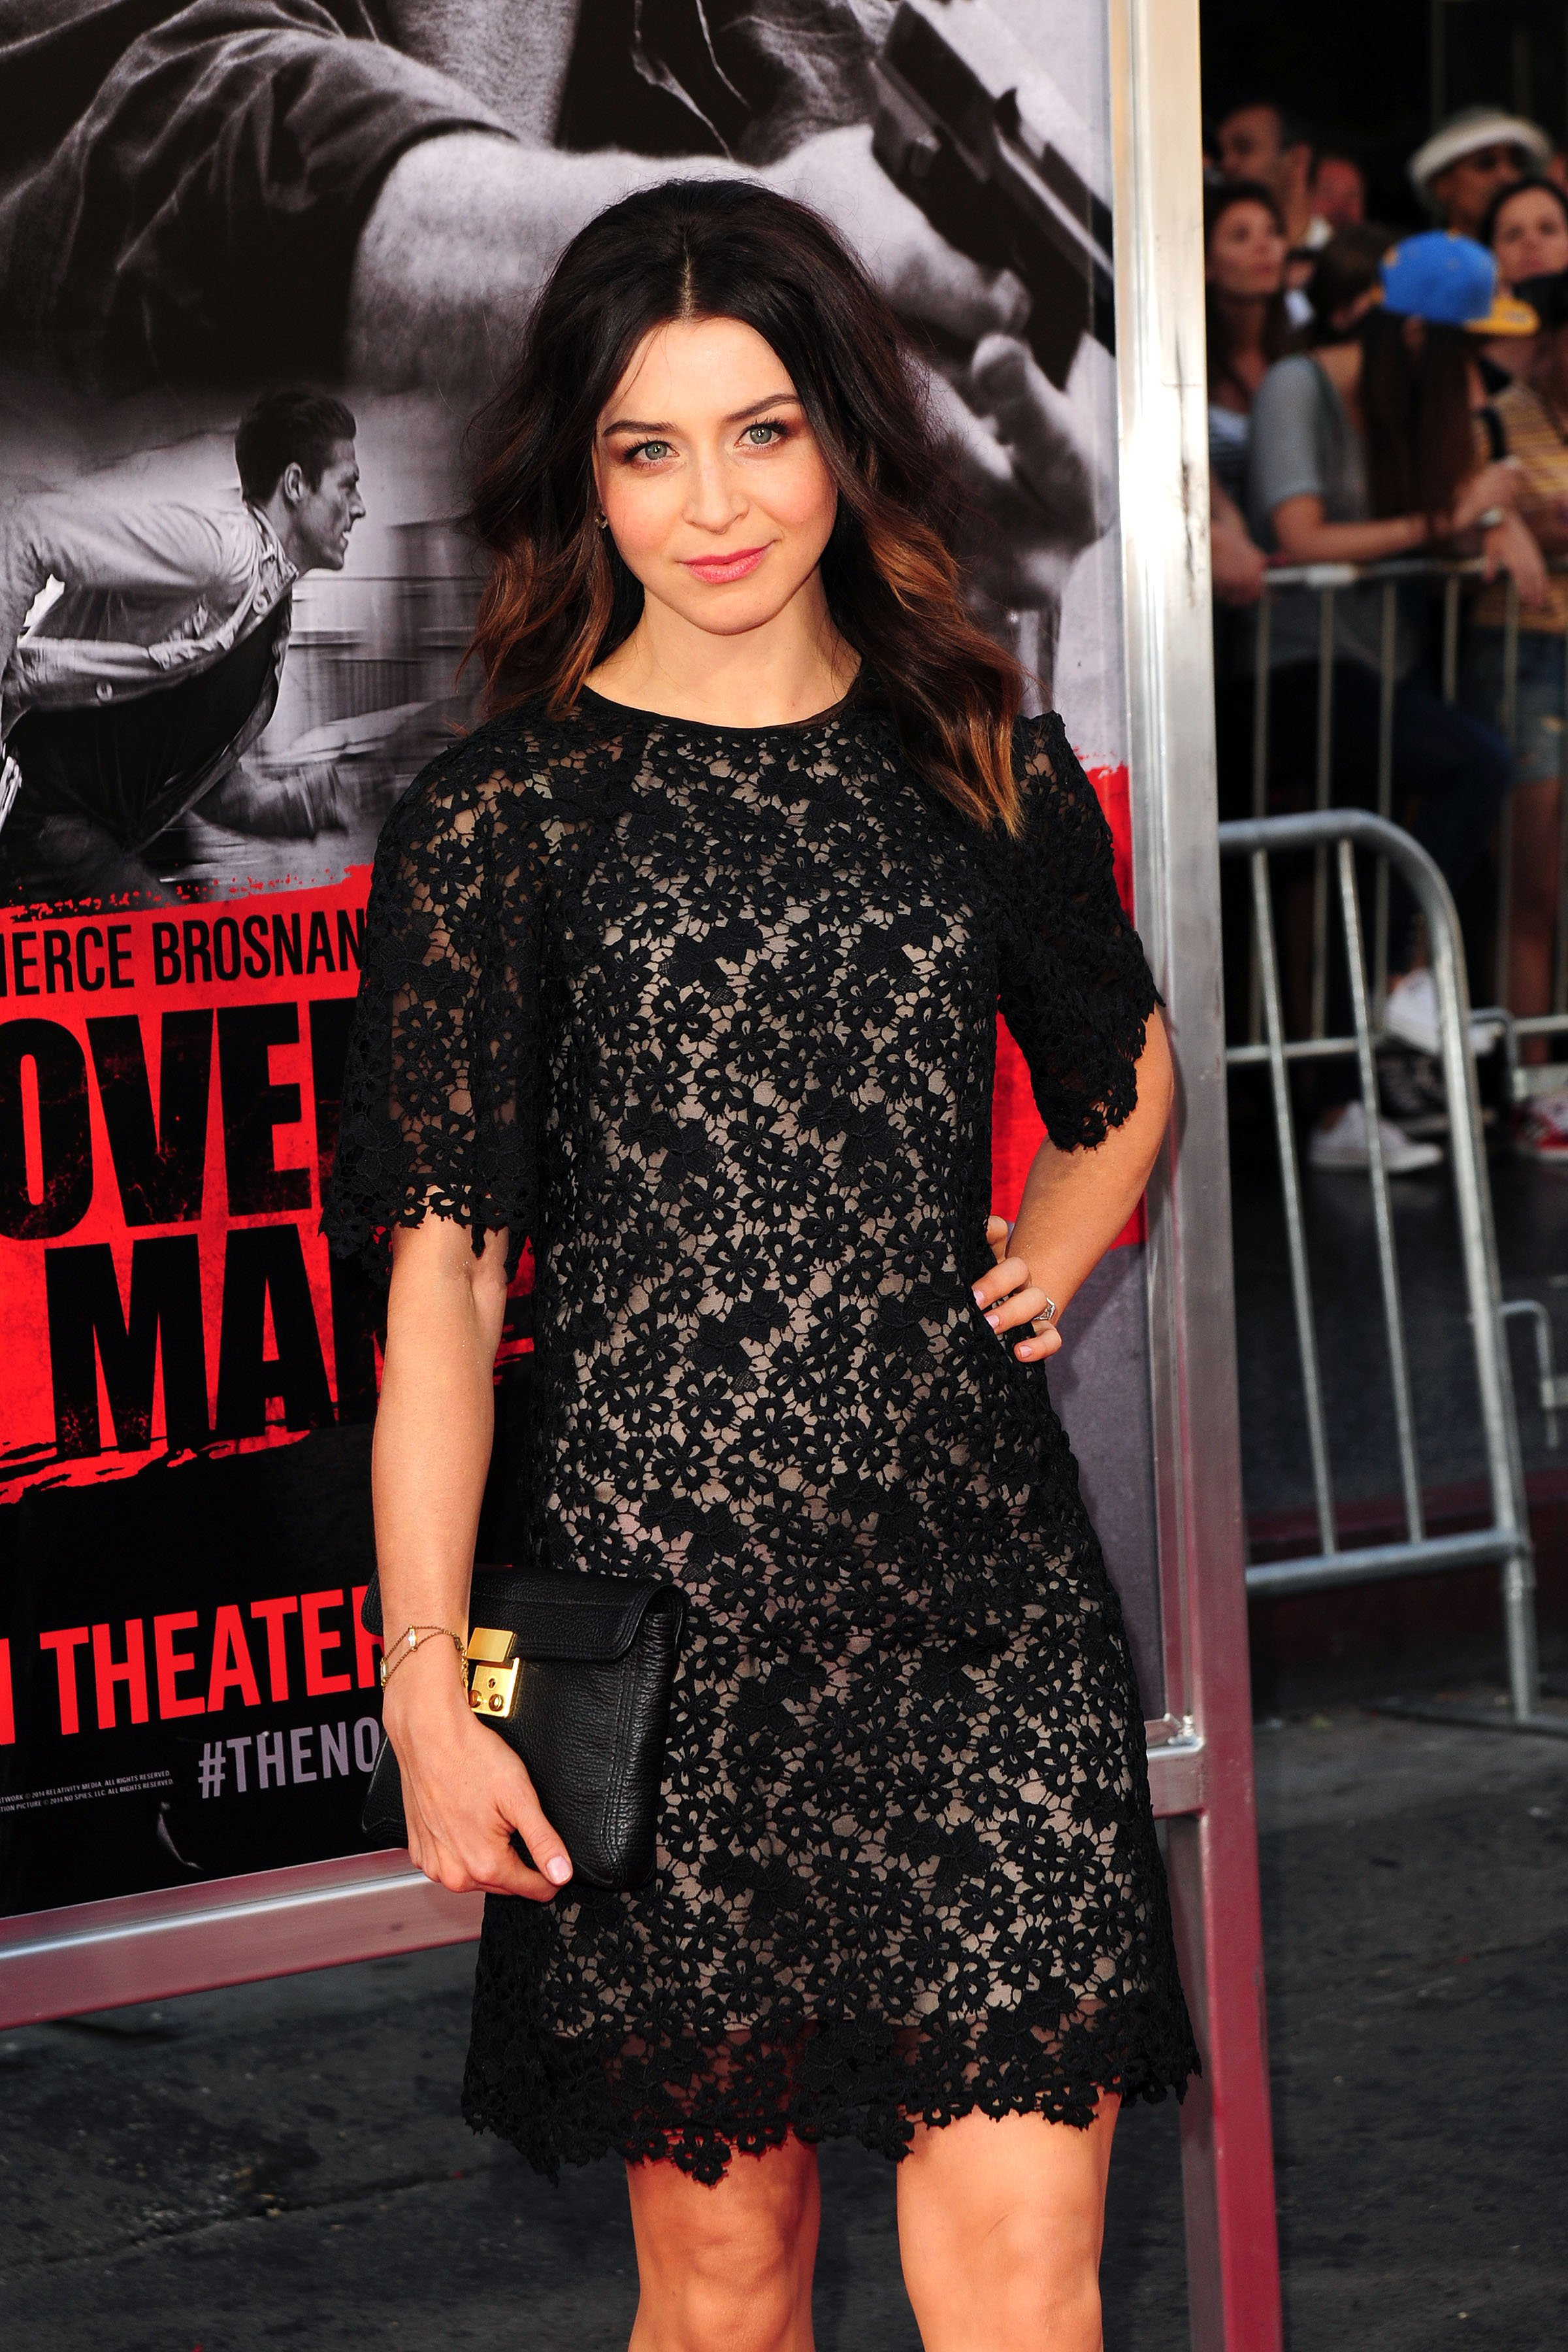 Caterina Scorsone at the premiere of The November Man at the TCL Chinese Theater on August 13, 2014 in Los Angeles